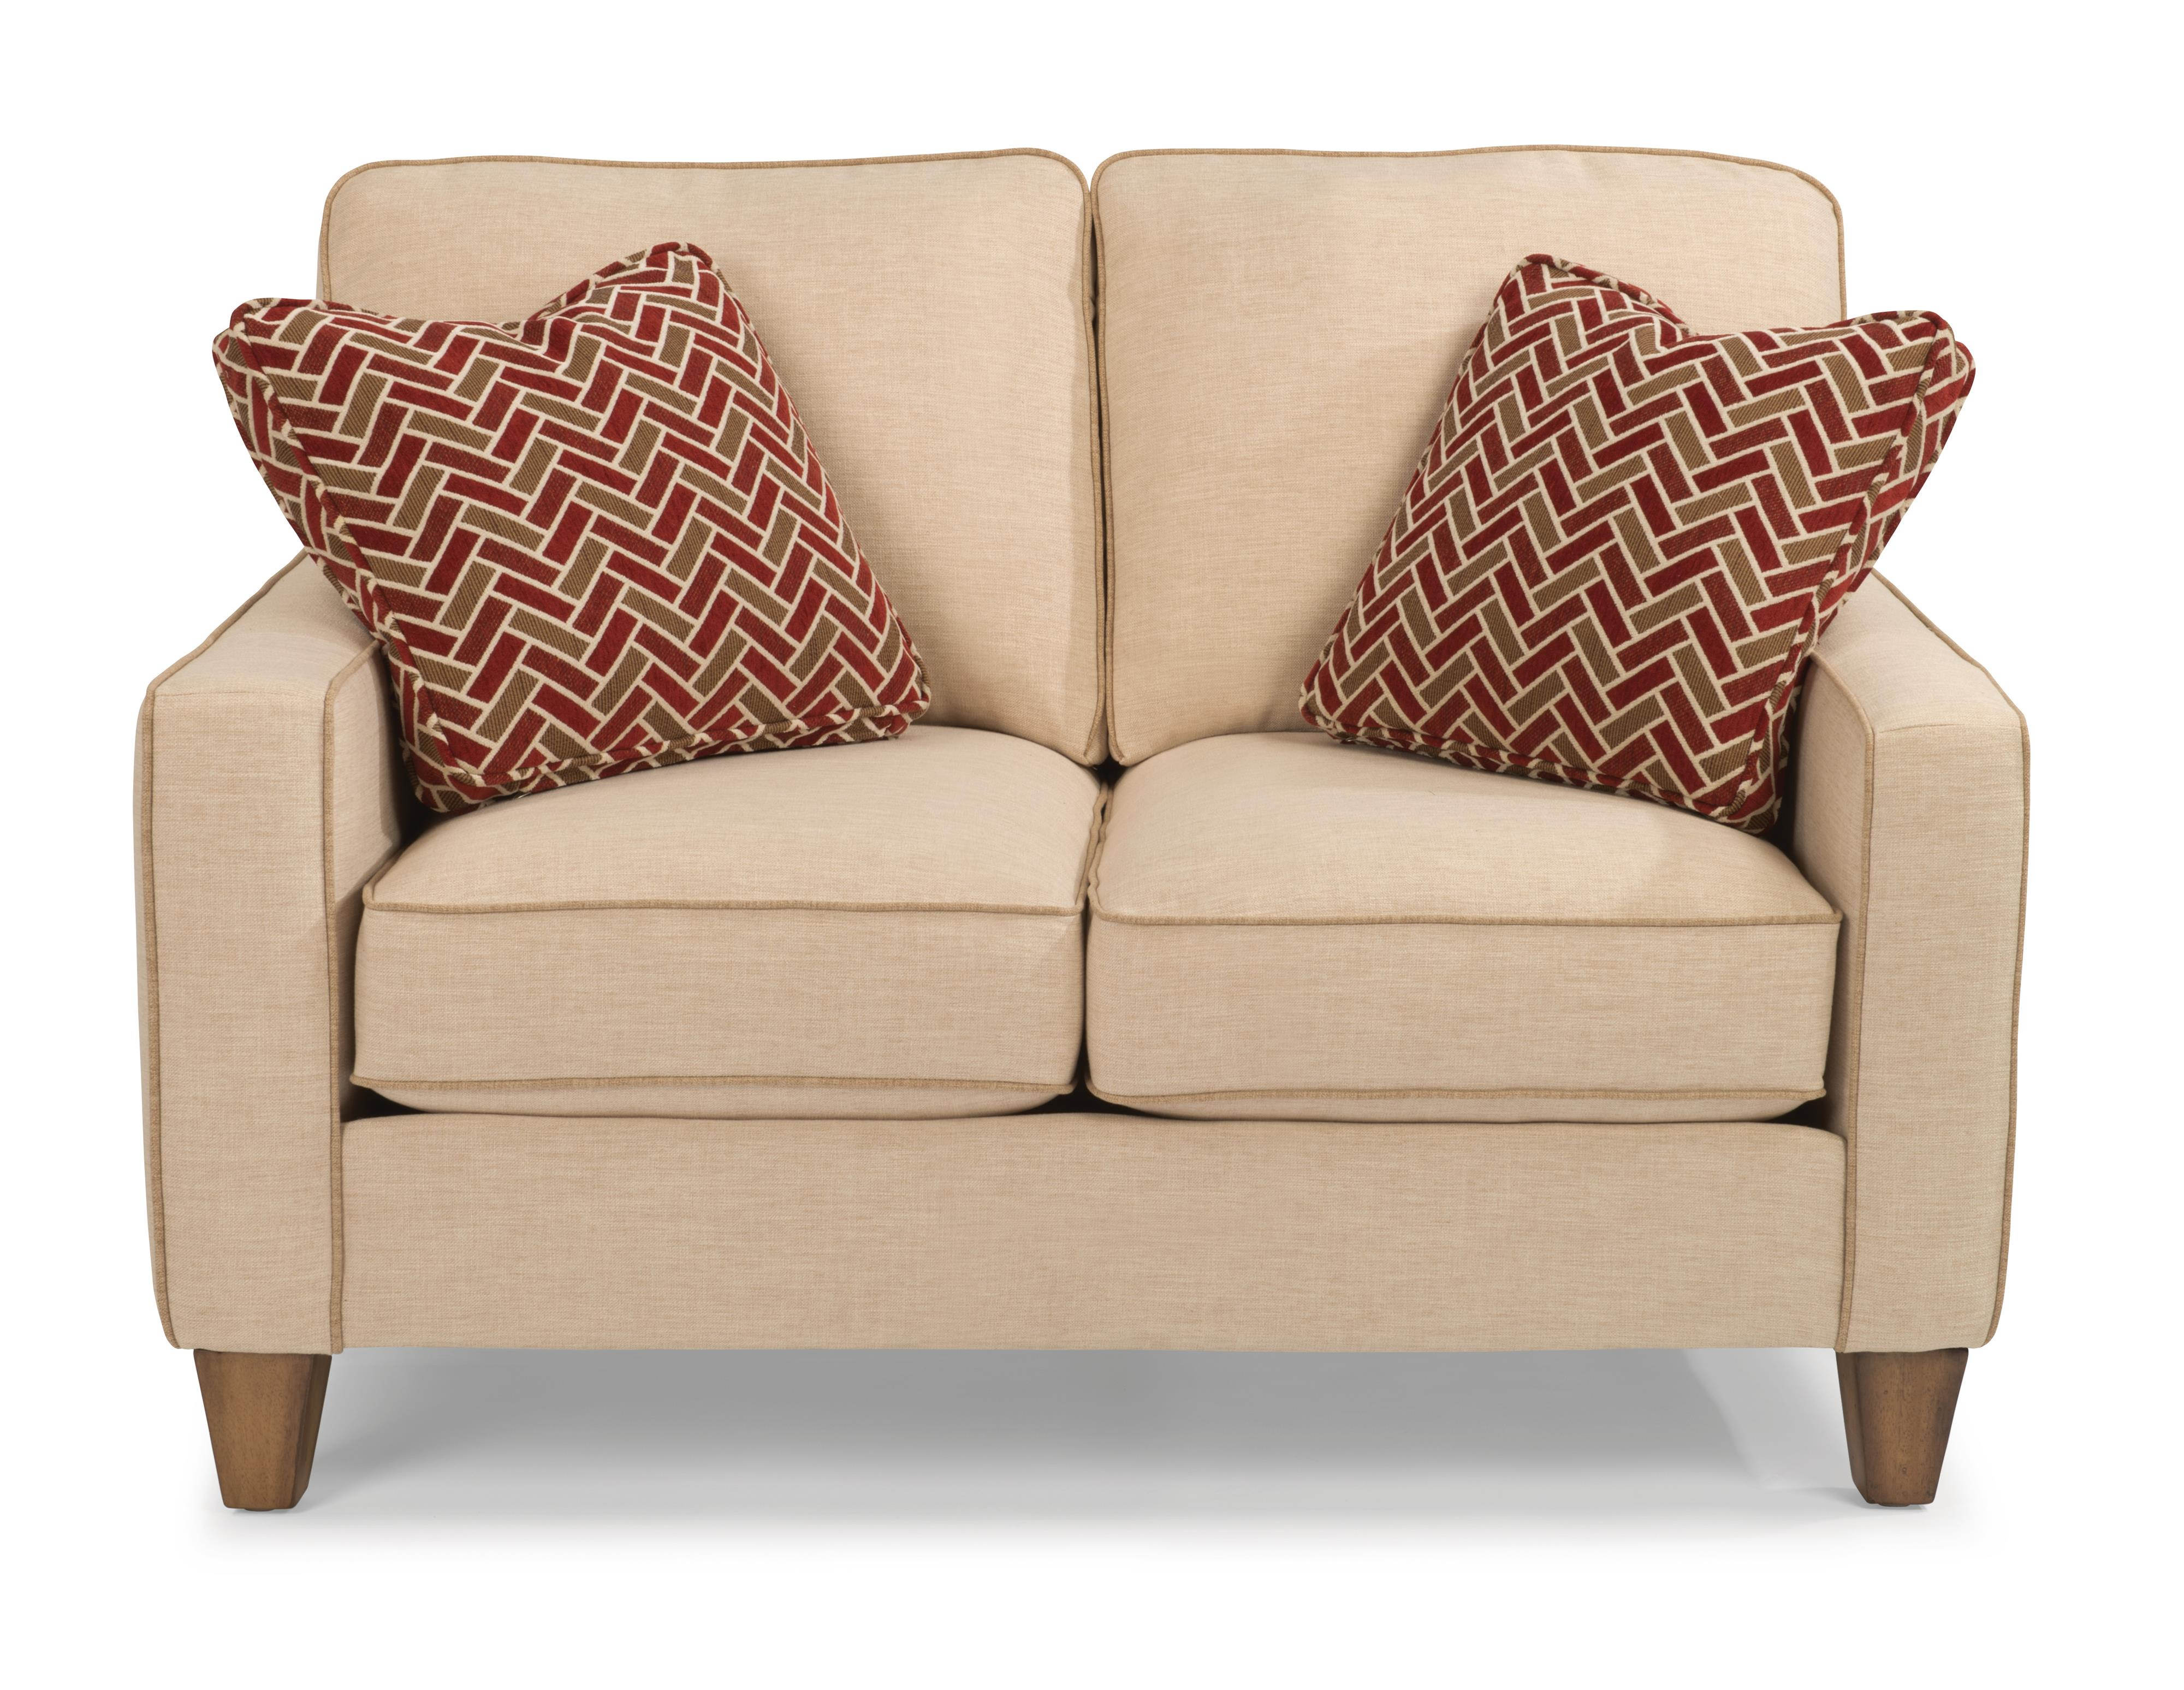 Flexsteel MacLeran Love Seat - Item Number: 5720-20-010-11